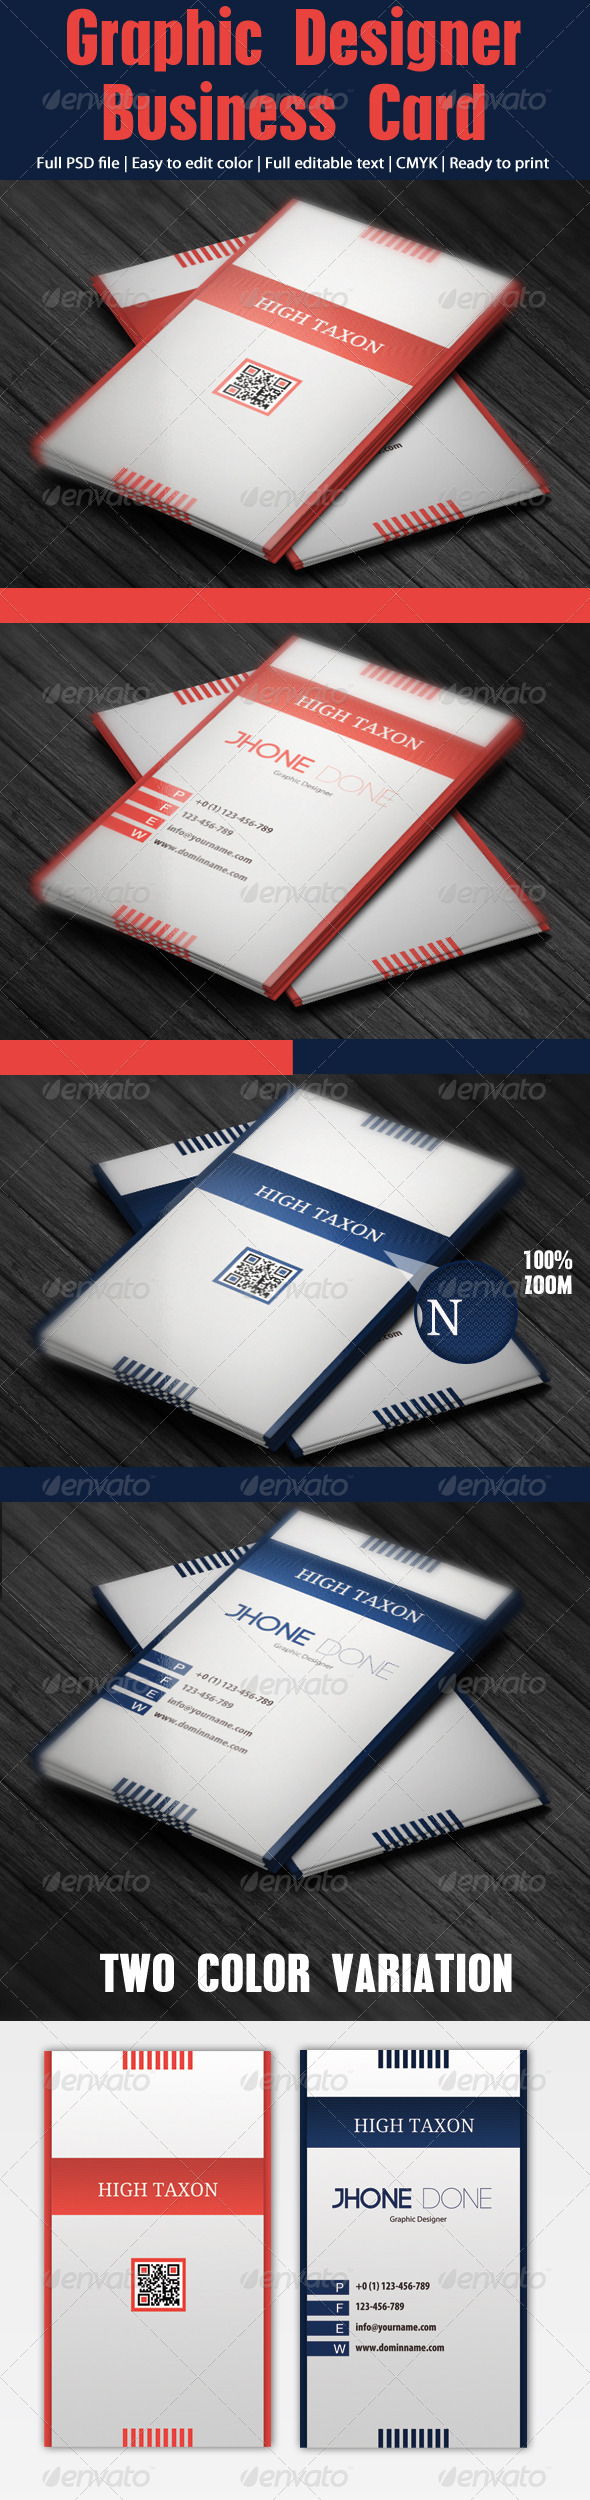 Graphic Designer Business Cards - Corporate Business Cards